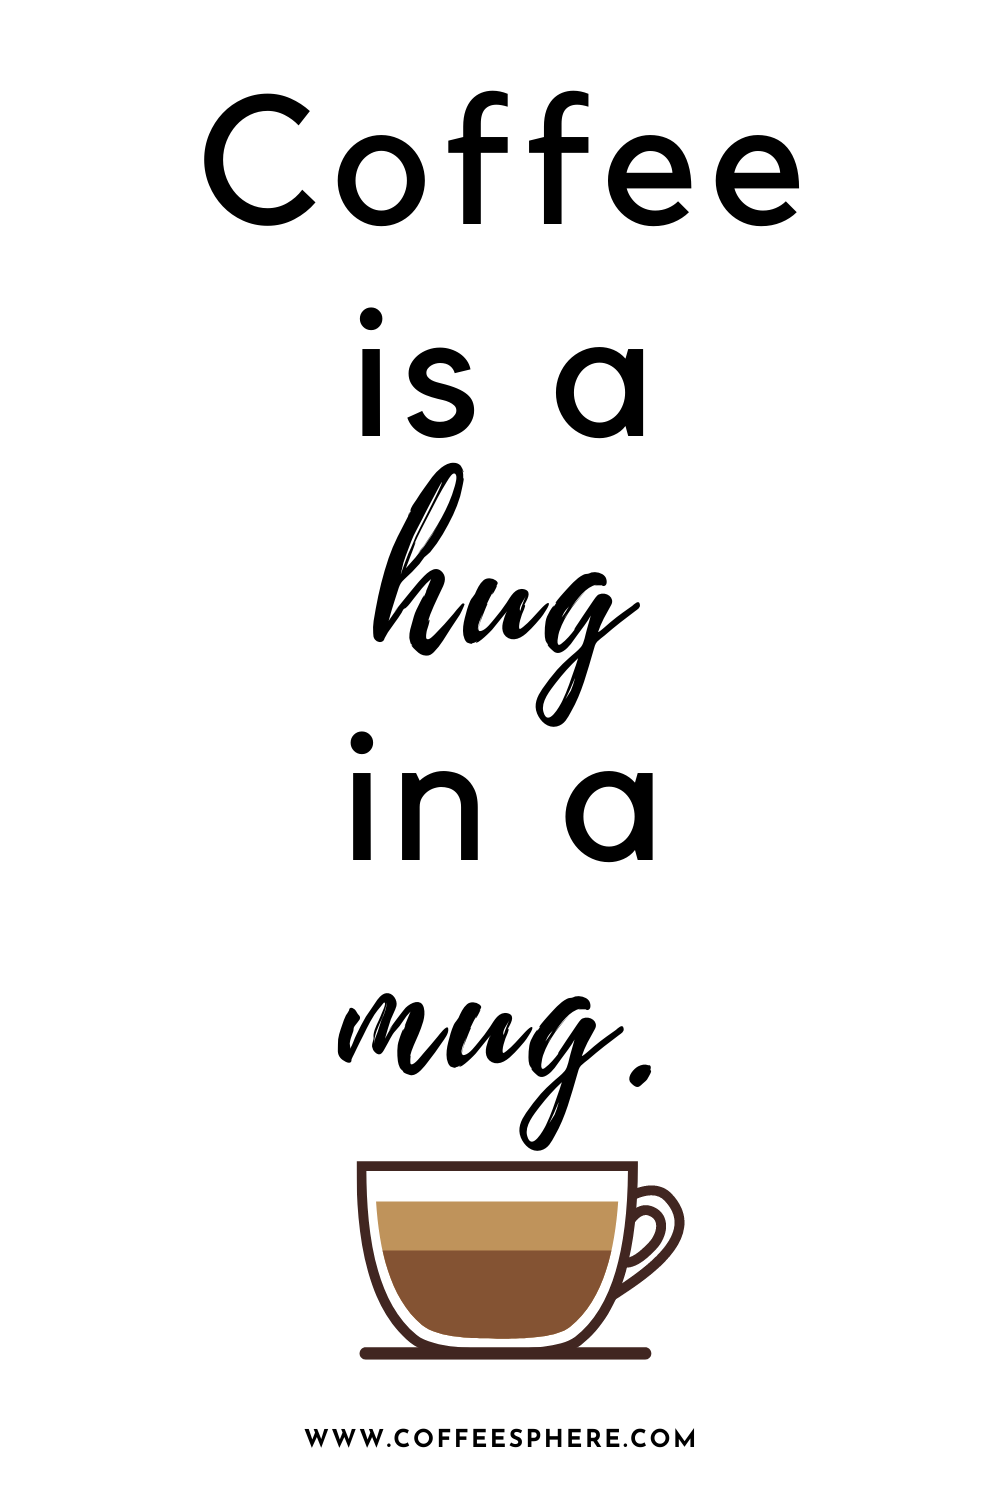 25 Coffee Quotes Funny Coffee Quotes That Will Brighten Your Mood Coffeesphere Funny Coffee Quotes Coffee Quotes Coffee Quotes Funny